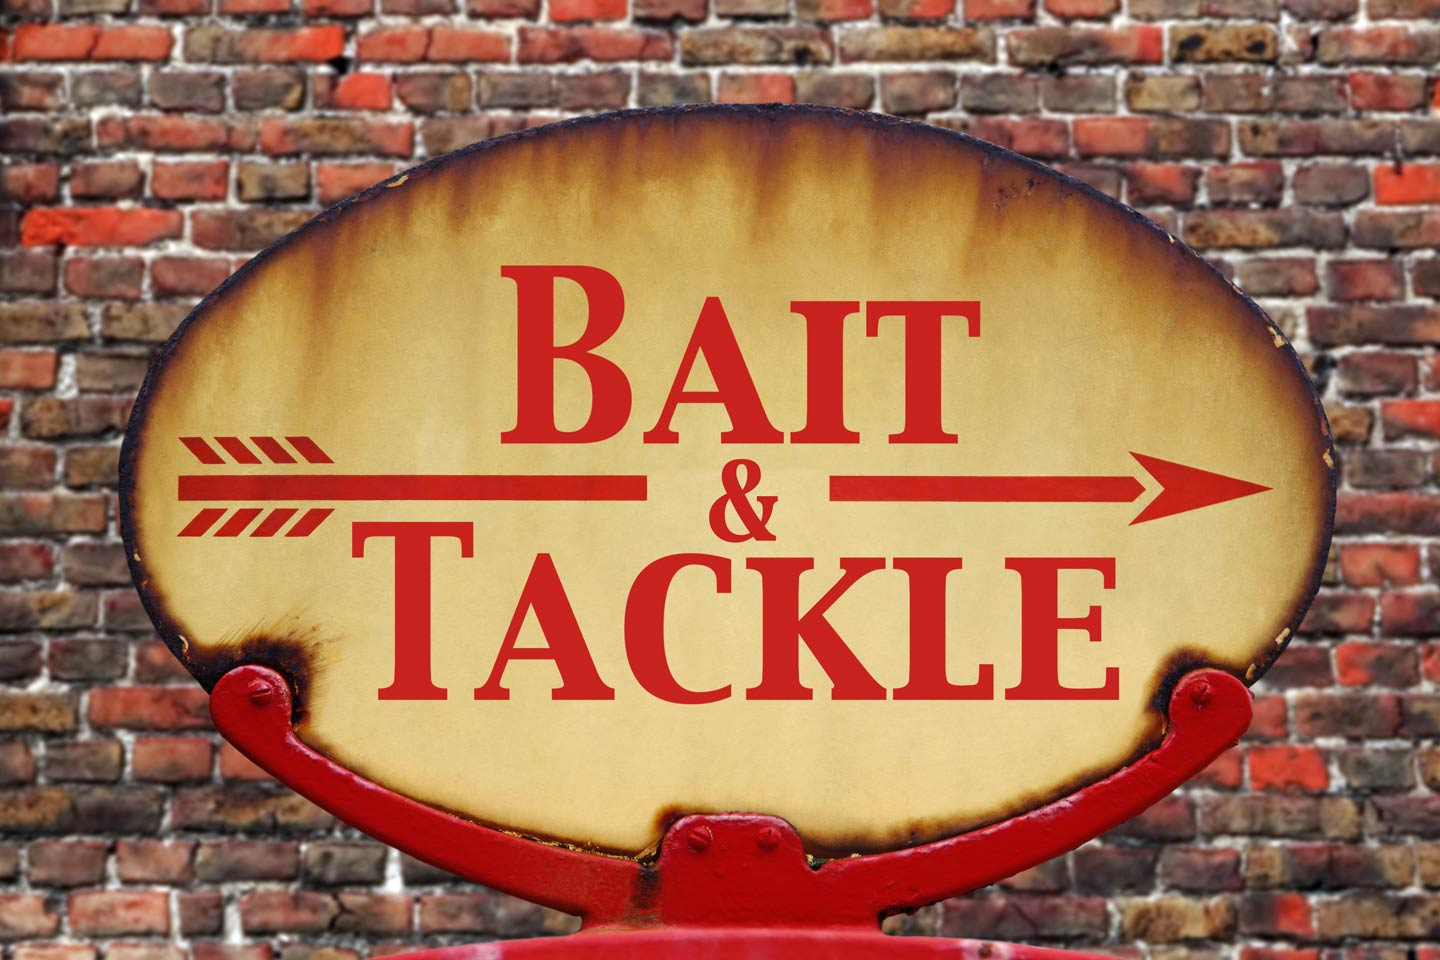 A vintage red and yellow bait and tackle sign against a brick wall